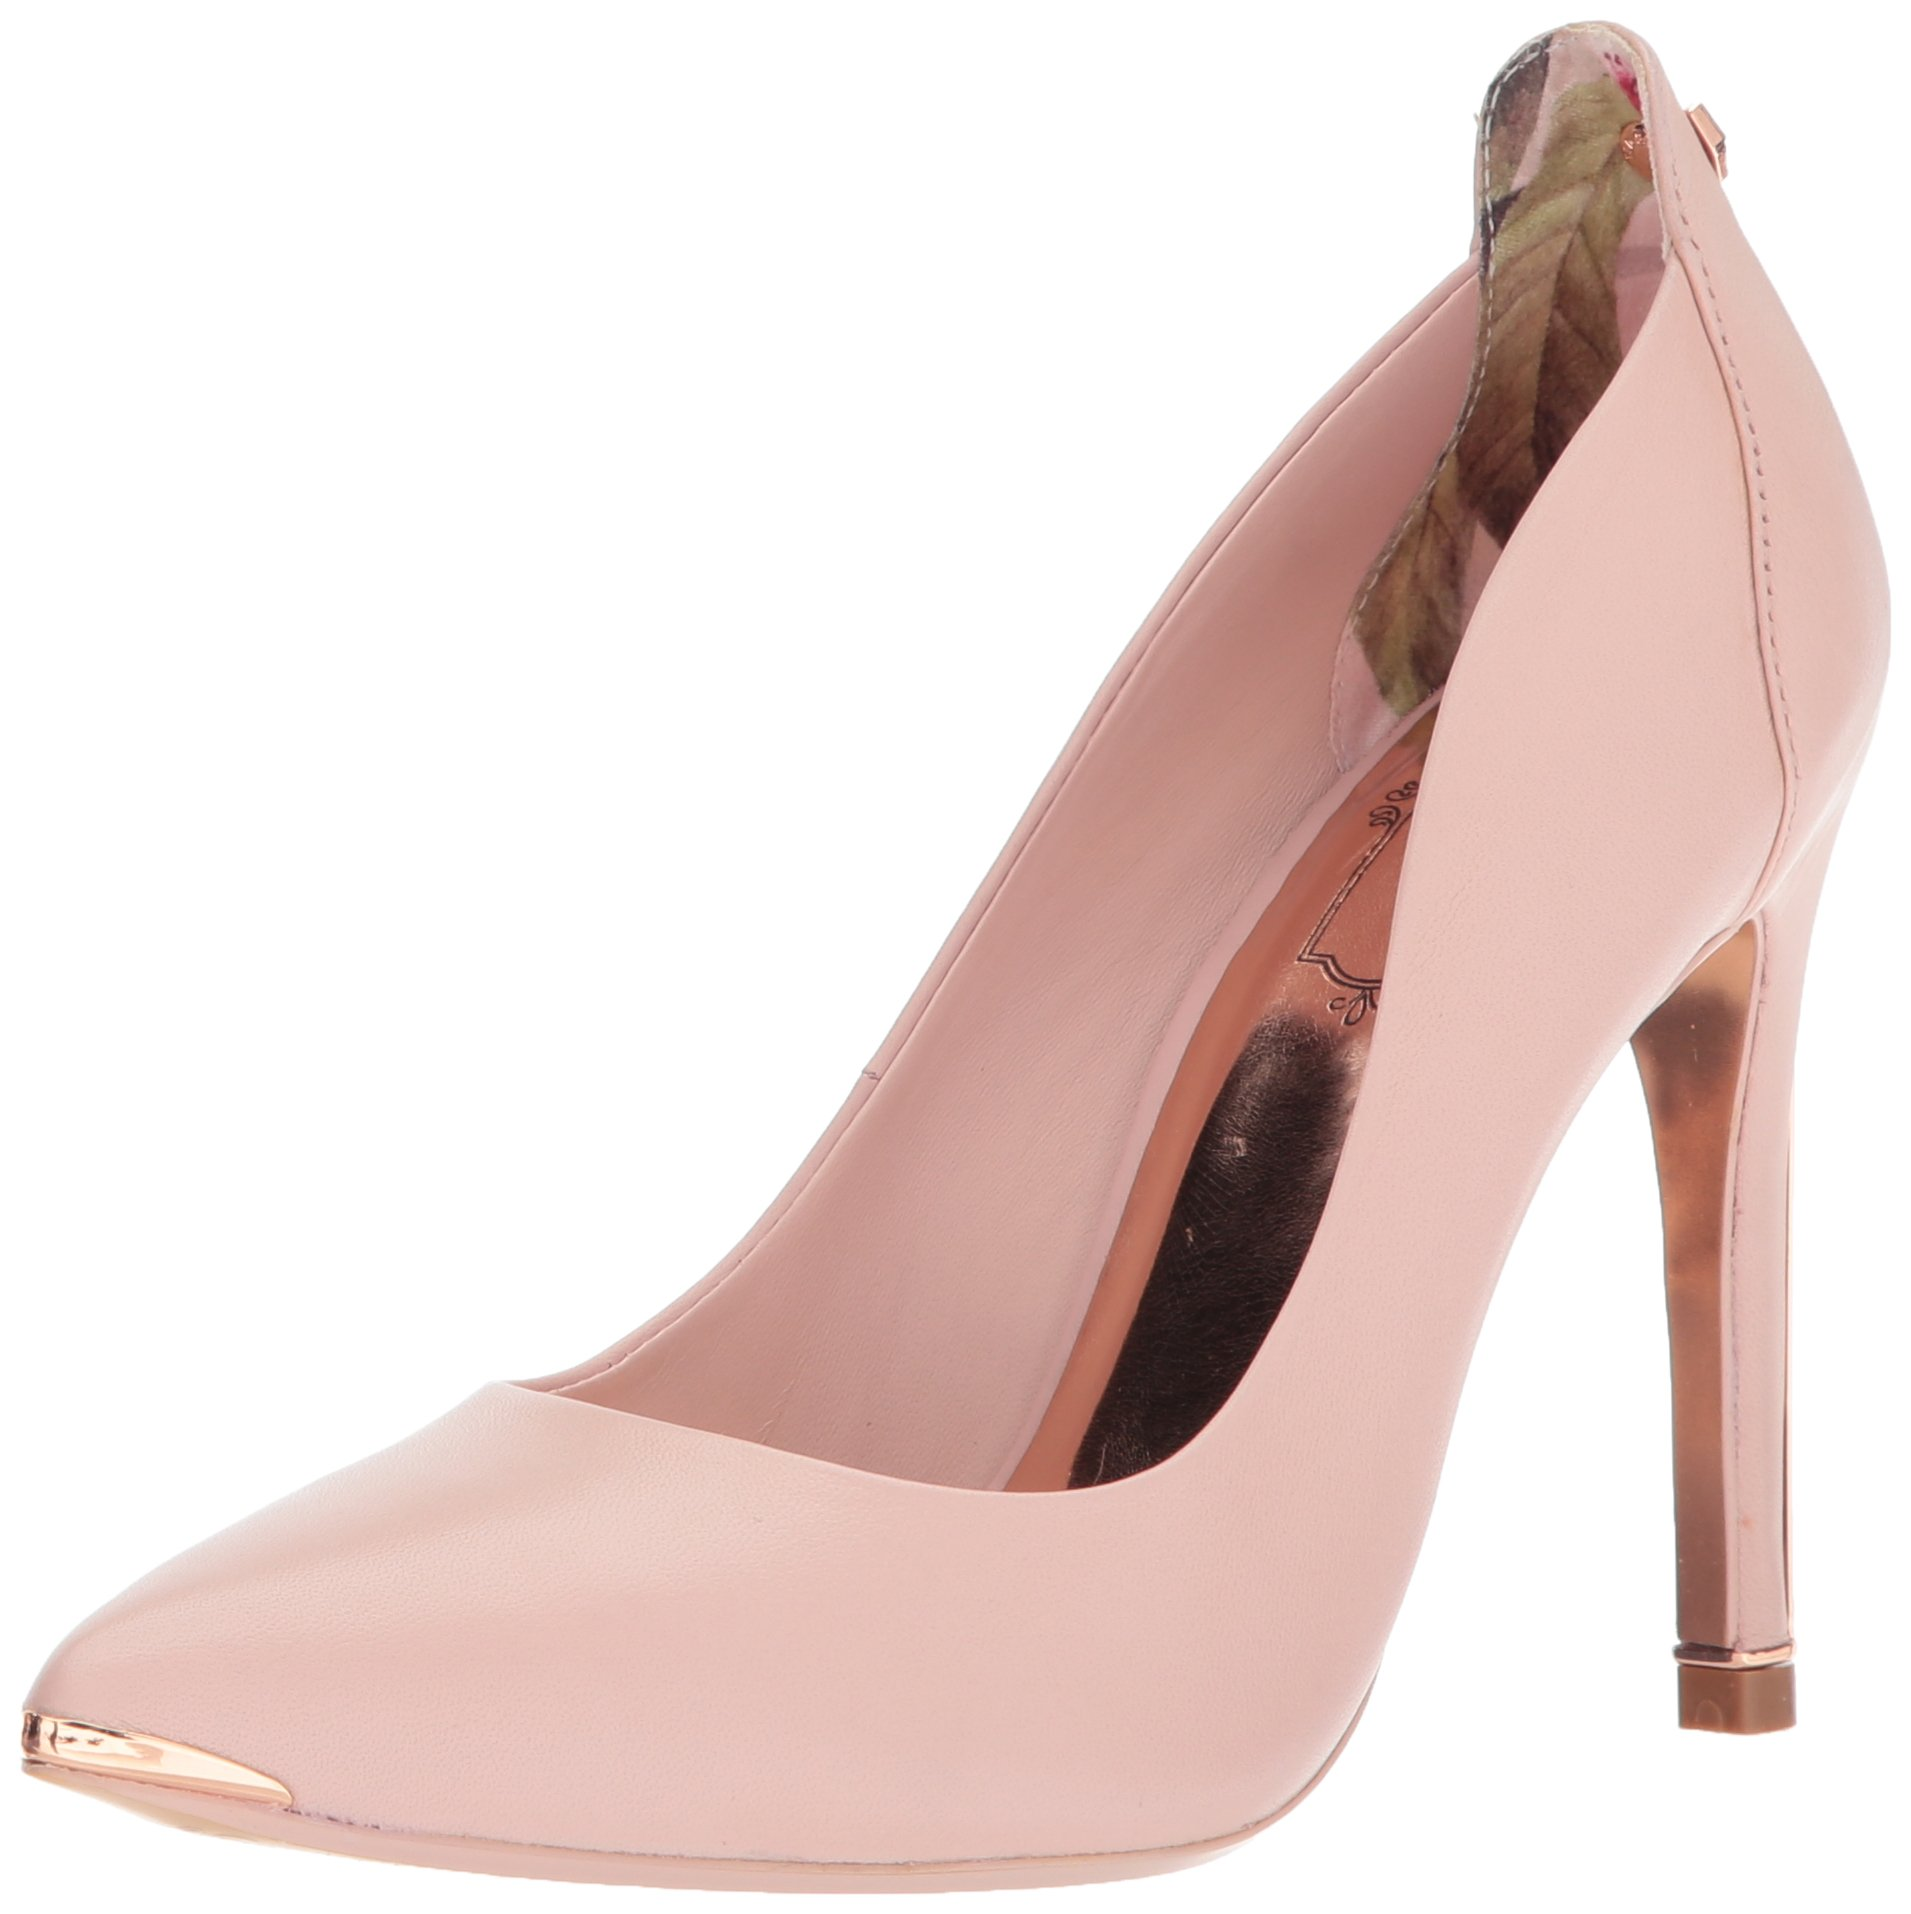 Ted Baker Women's Melisah Pump, Blossom Pink, 7 B(M) US